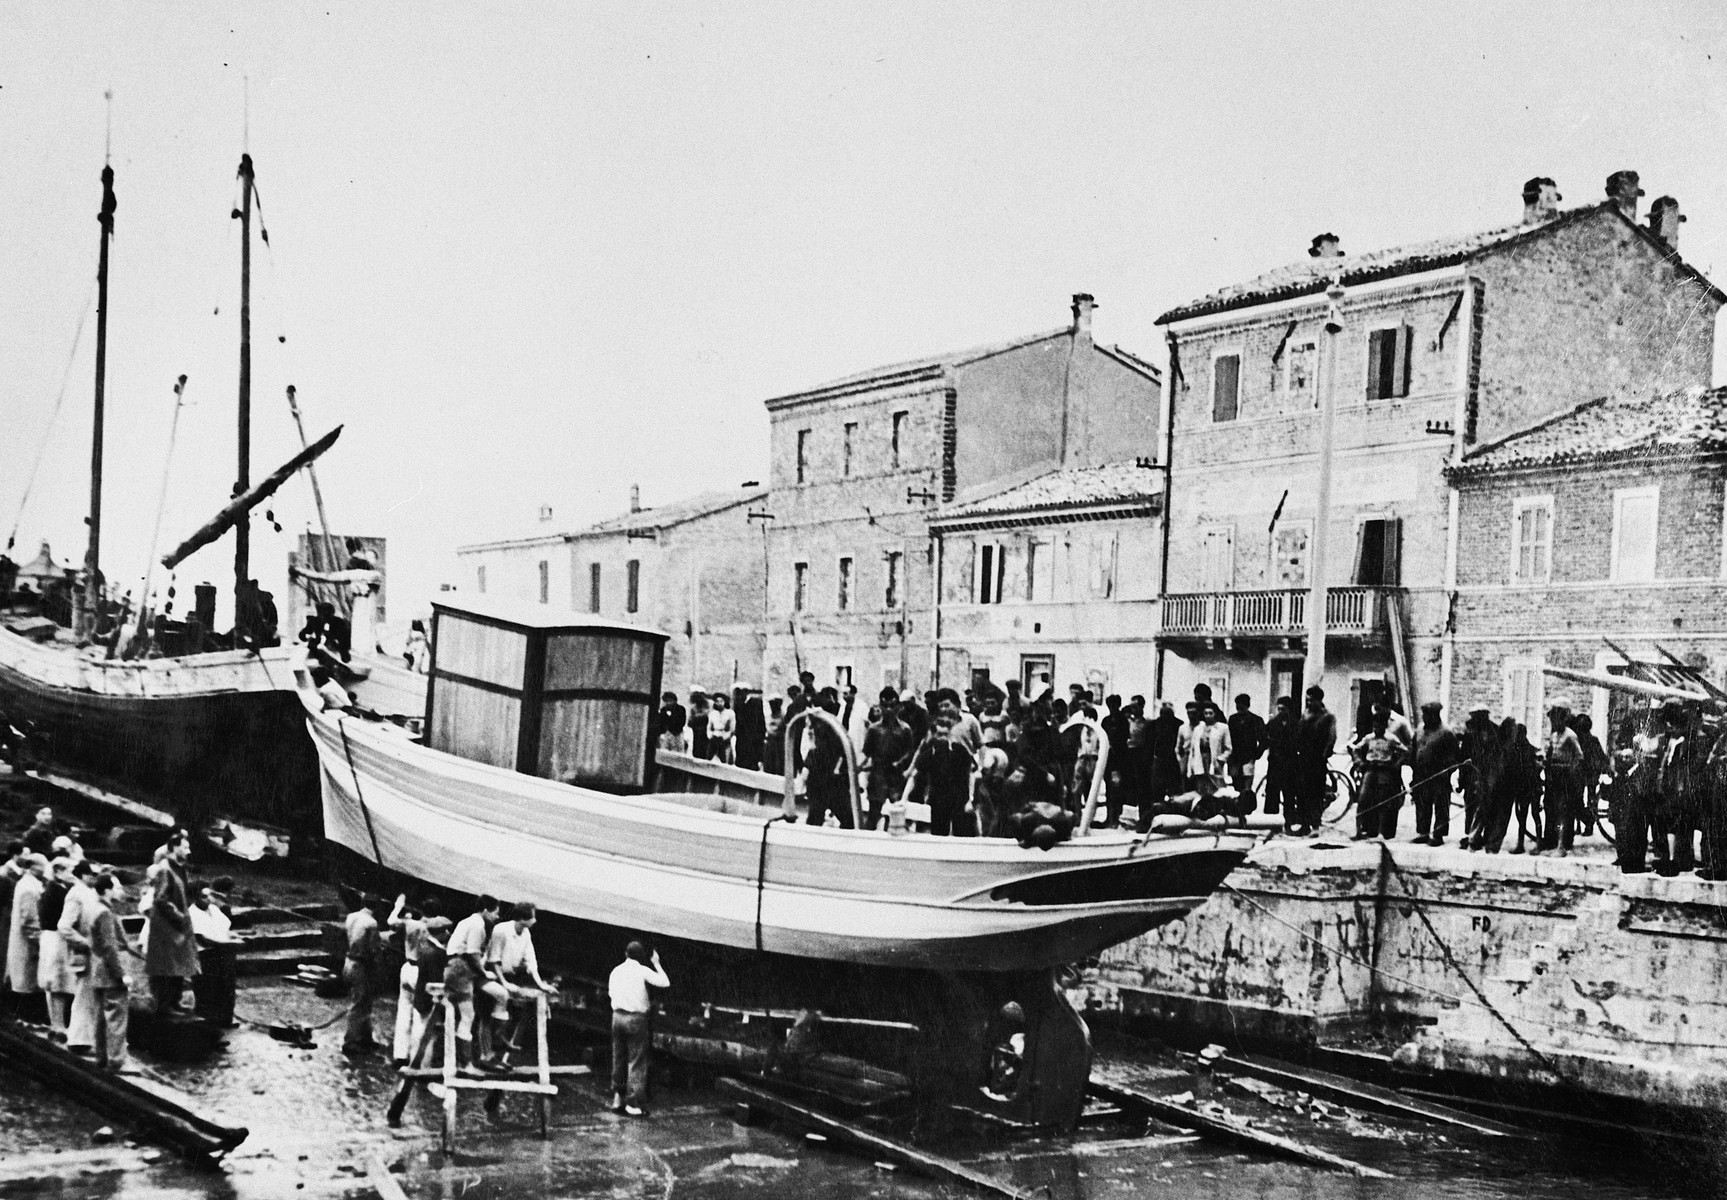 Jewish DPs gather on the pier alongside their newly constructed fishing boat during its christening ceremony at the Migdalor hachshara, a maritime Zionist collective in Fano, Italy.